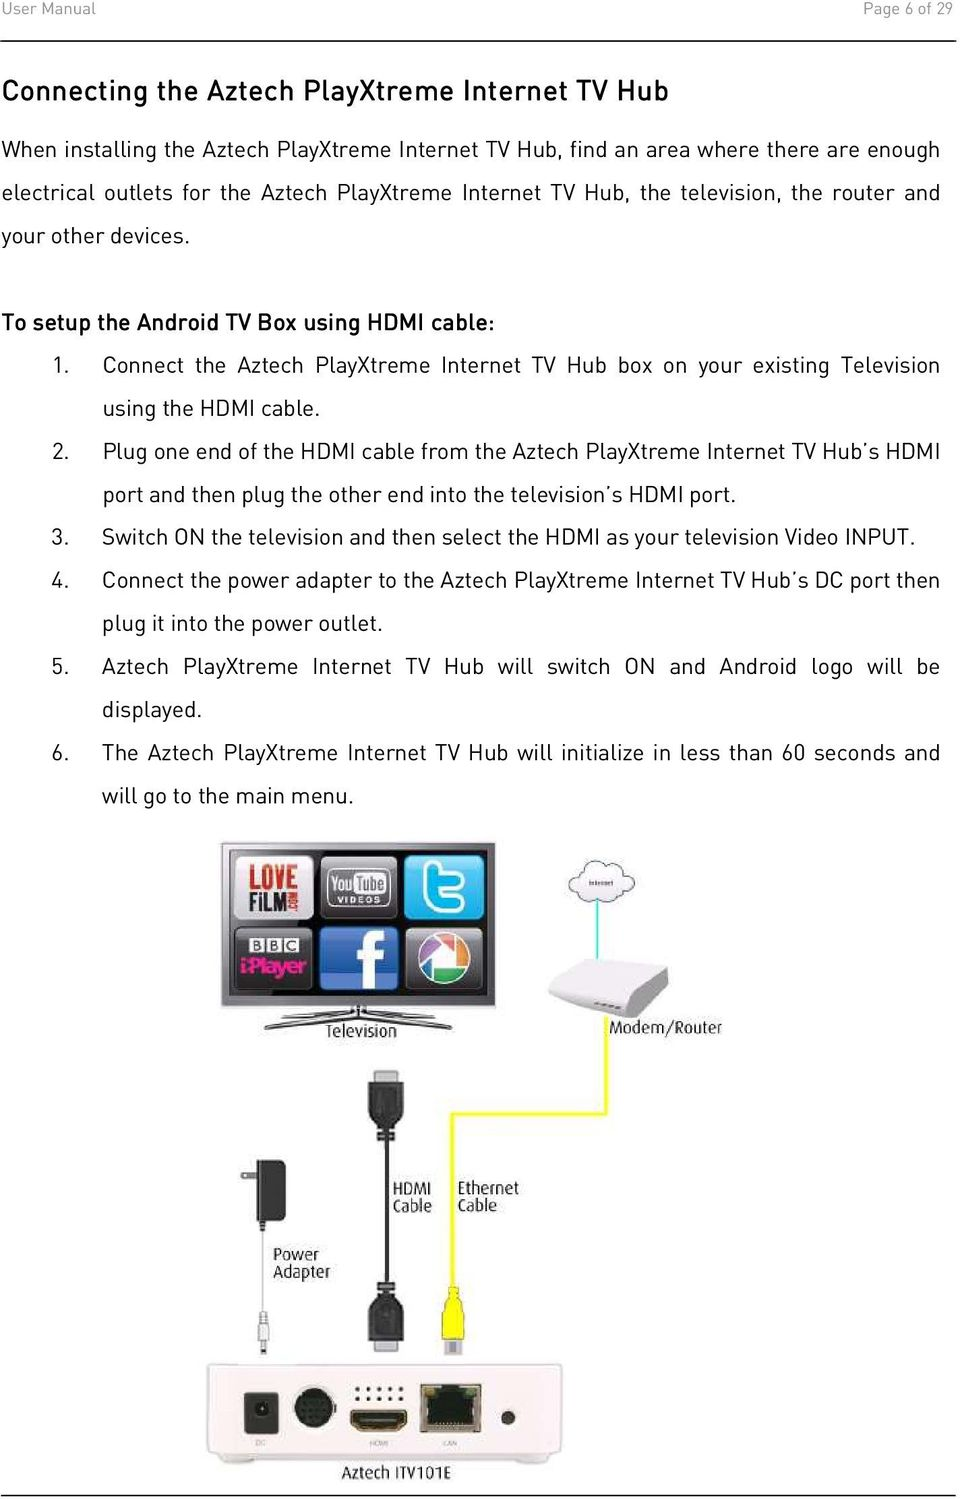 Connect the Aztech PlayXtreme Internet TV Hub box on your existing Television using the HDMI cable. 2.